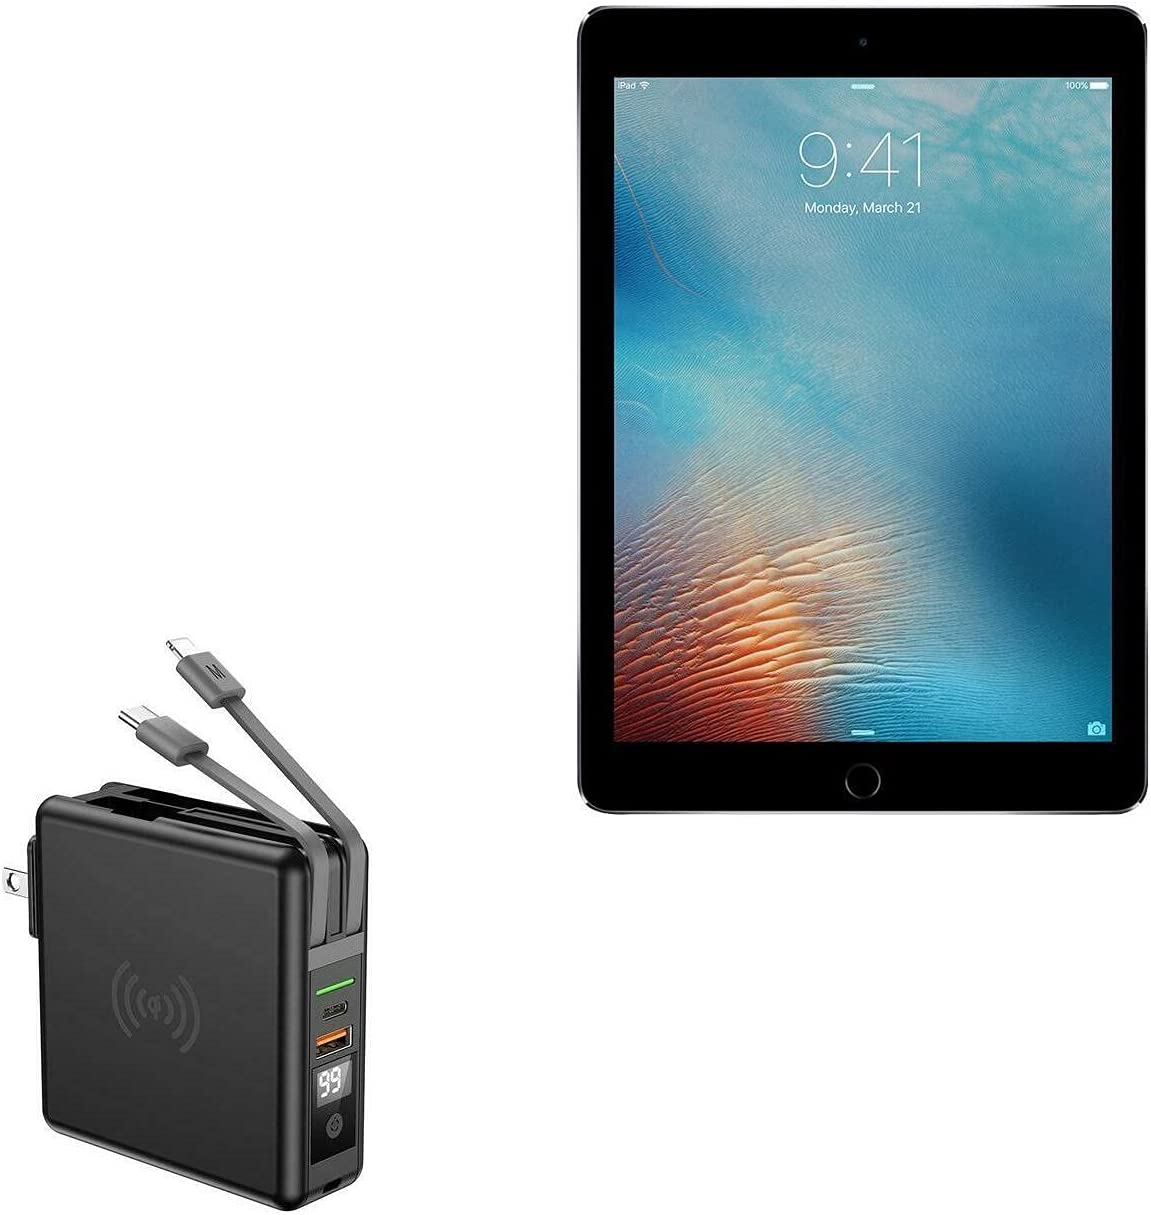 Charger for iPad Pro 9.7 (2016) (Charger by BoxWave) - Wireless Rejuva Wall Charger (10000mAh), Wireless Rejuva Wall Charger (10000mAh) for iPad Pro 9.7 (2016), Apple iPad Pro 9.7 (2016) - Jet Black